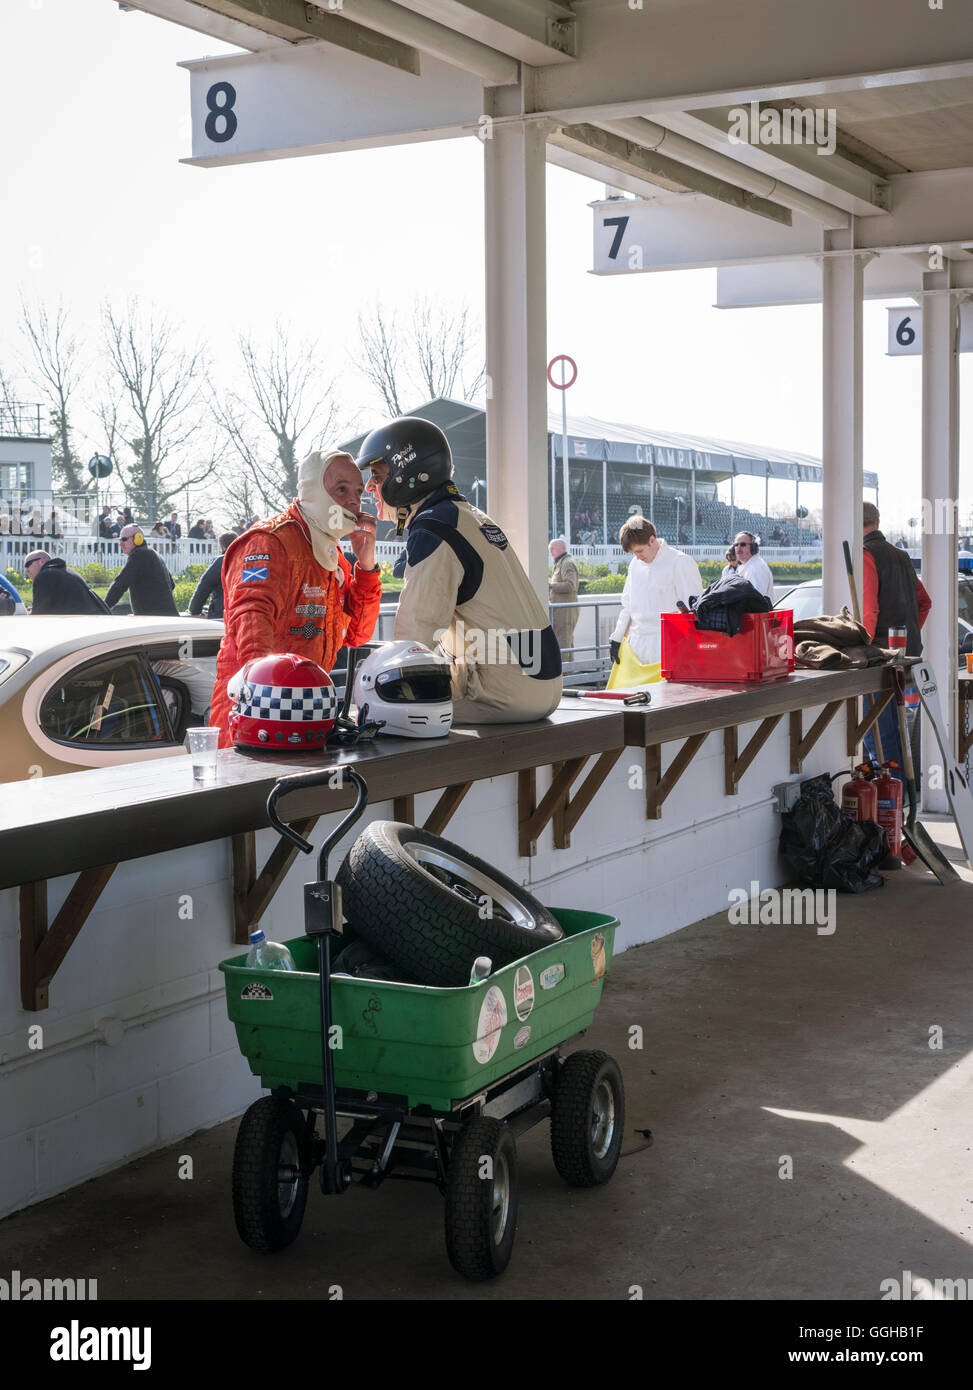 Racing driver in the pit lane, 72nd Members Meeting, racing, car racing, classic car, Chichester, Sussex, United - Stock Image